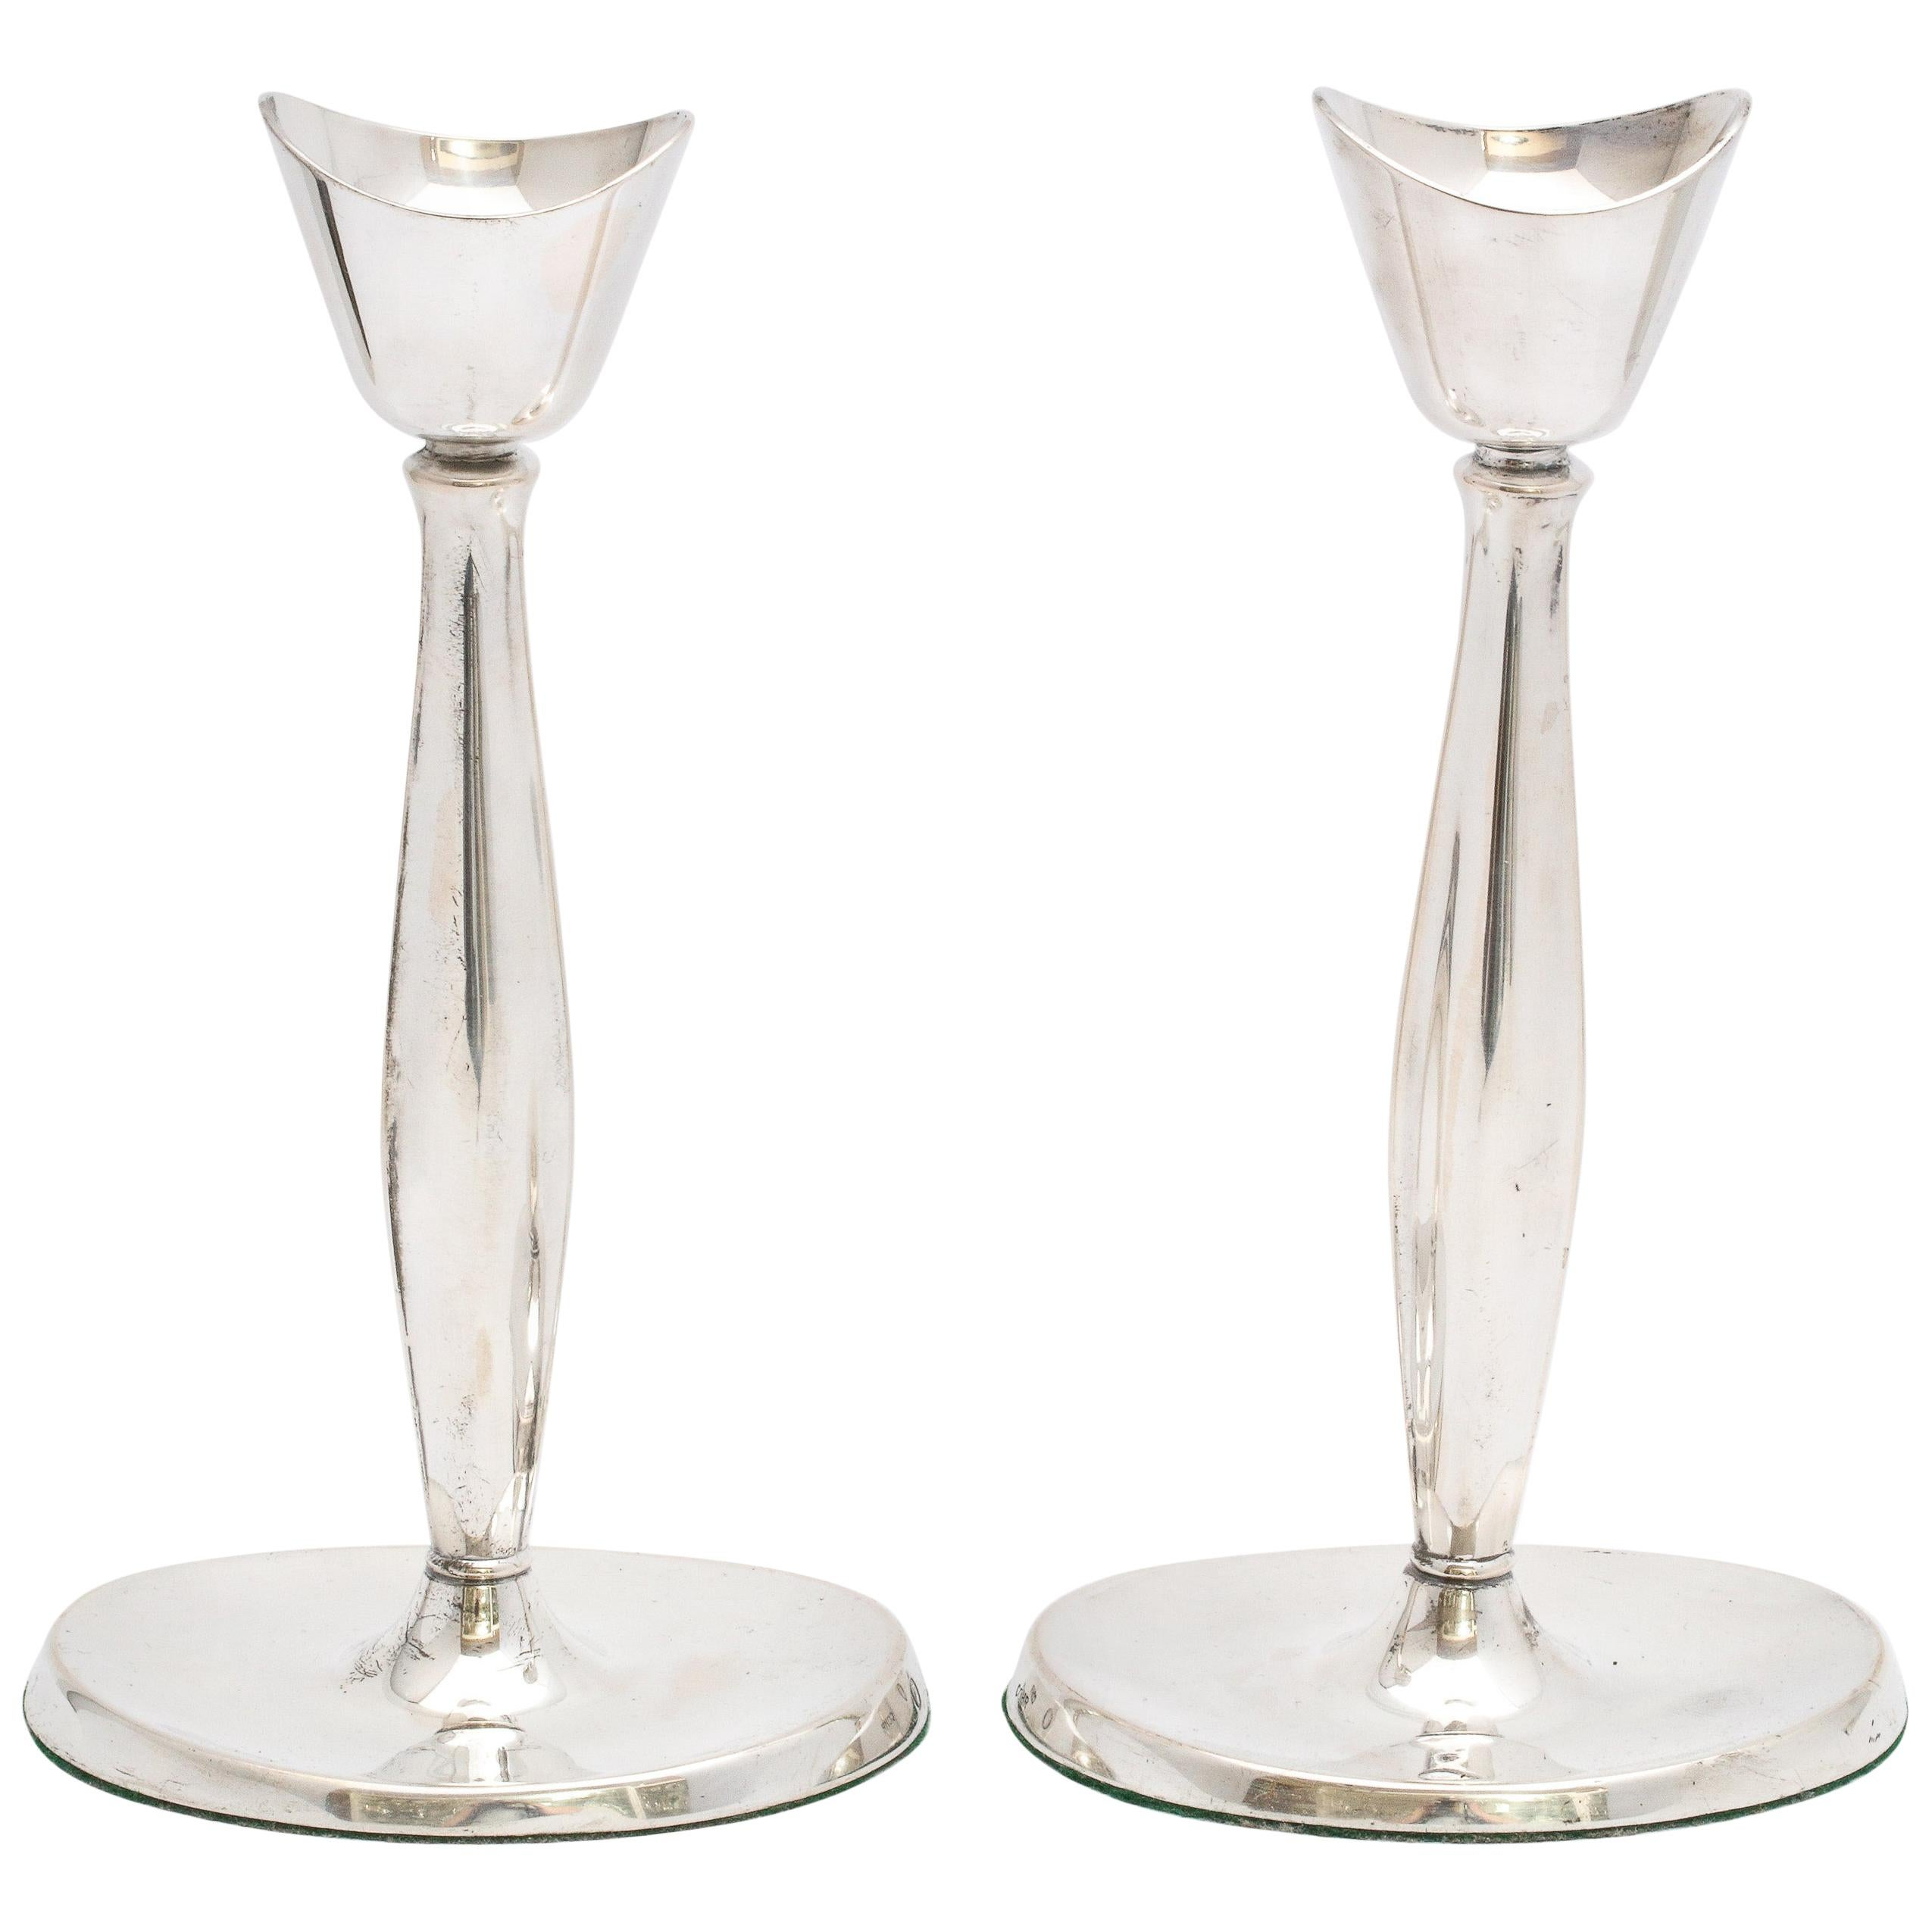 Pair of Mid-Century Modern Danish Sterling Silver Candlesticks by Cohr